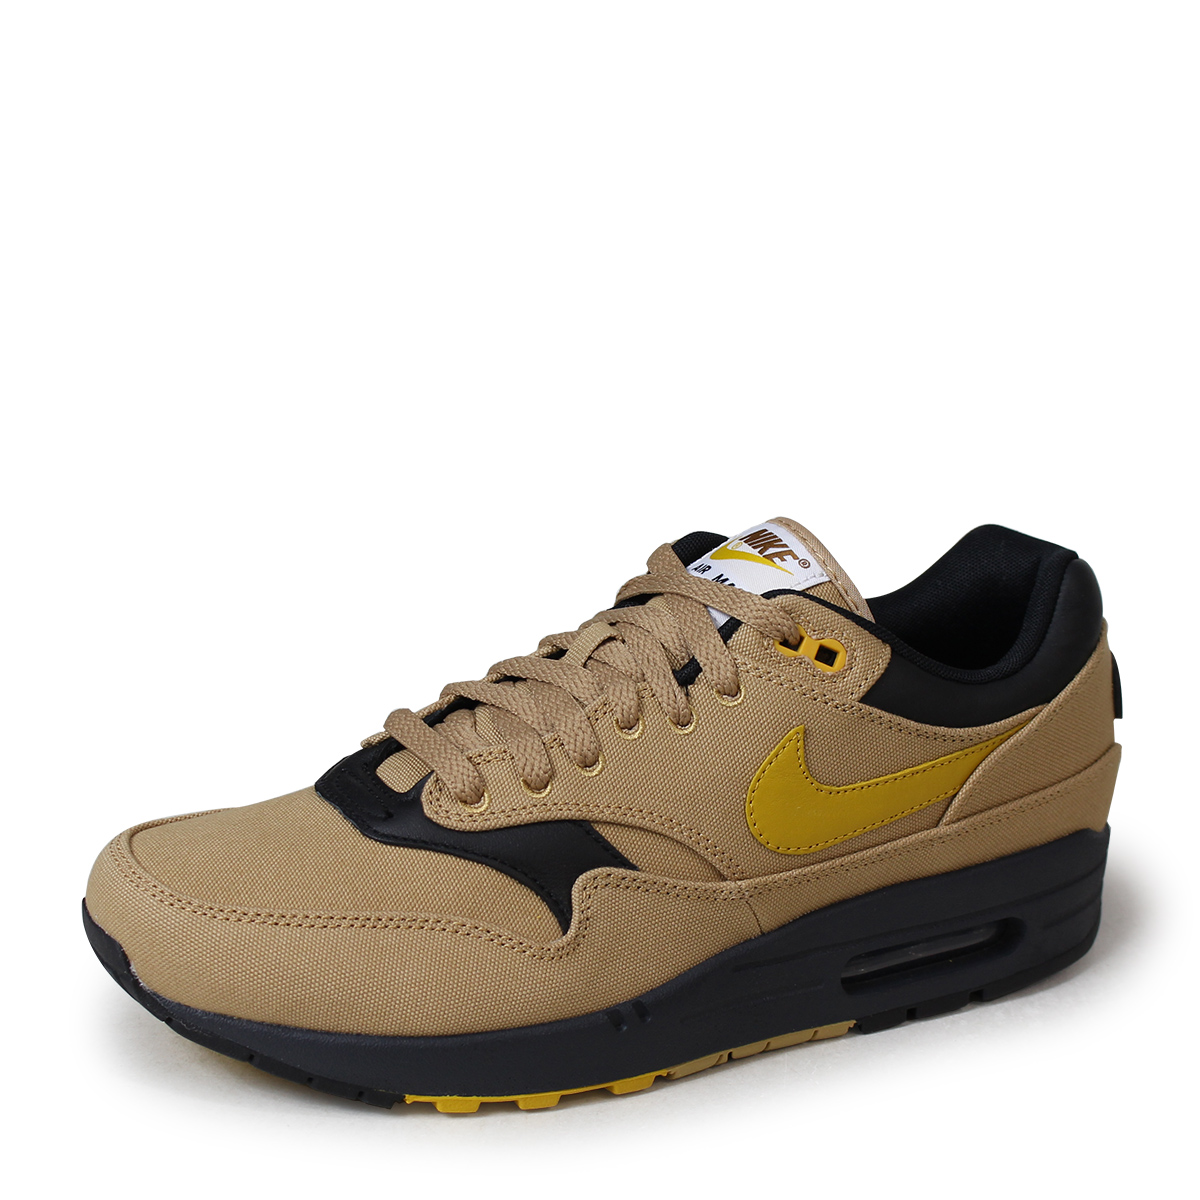 huge discount 3855e 66489 NIKE AIR MAX 1 PREMIUM Kie Ney AMAX 1 premium sneakers men 875,844-700  beige  load planned Shinnyu load in reservation product 5 18 containing    185